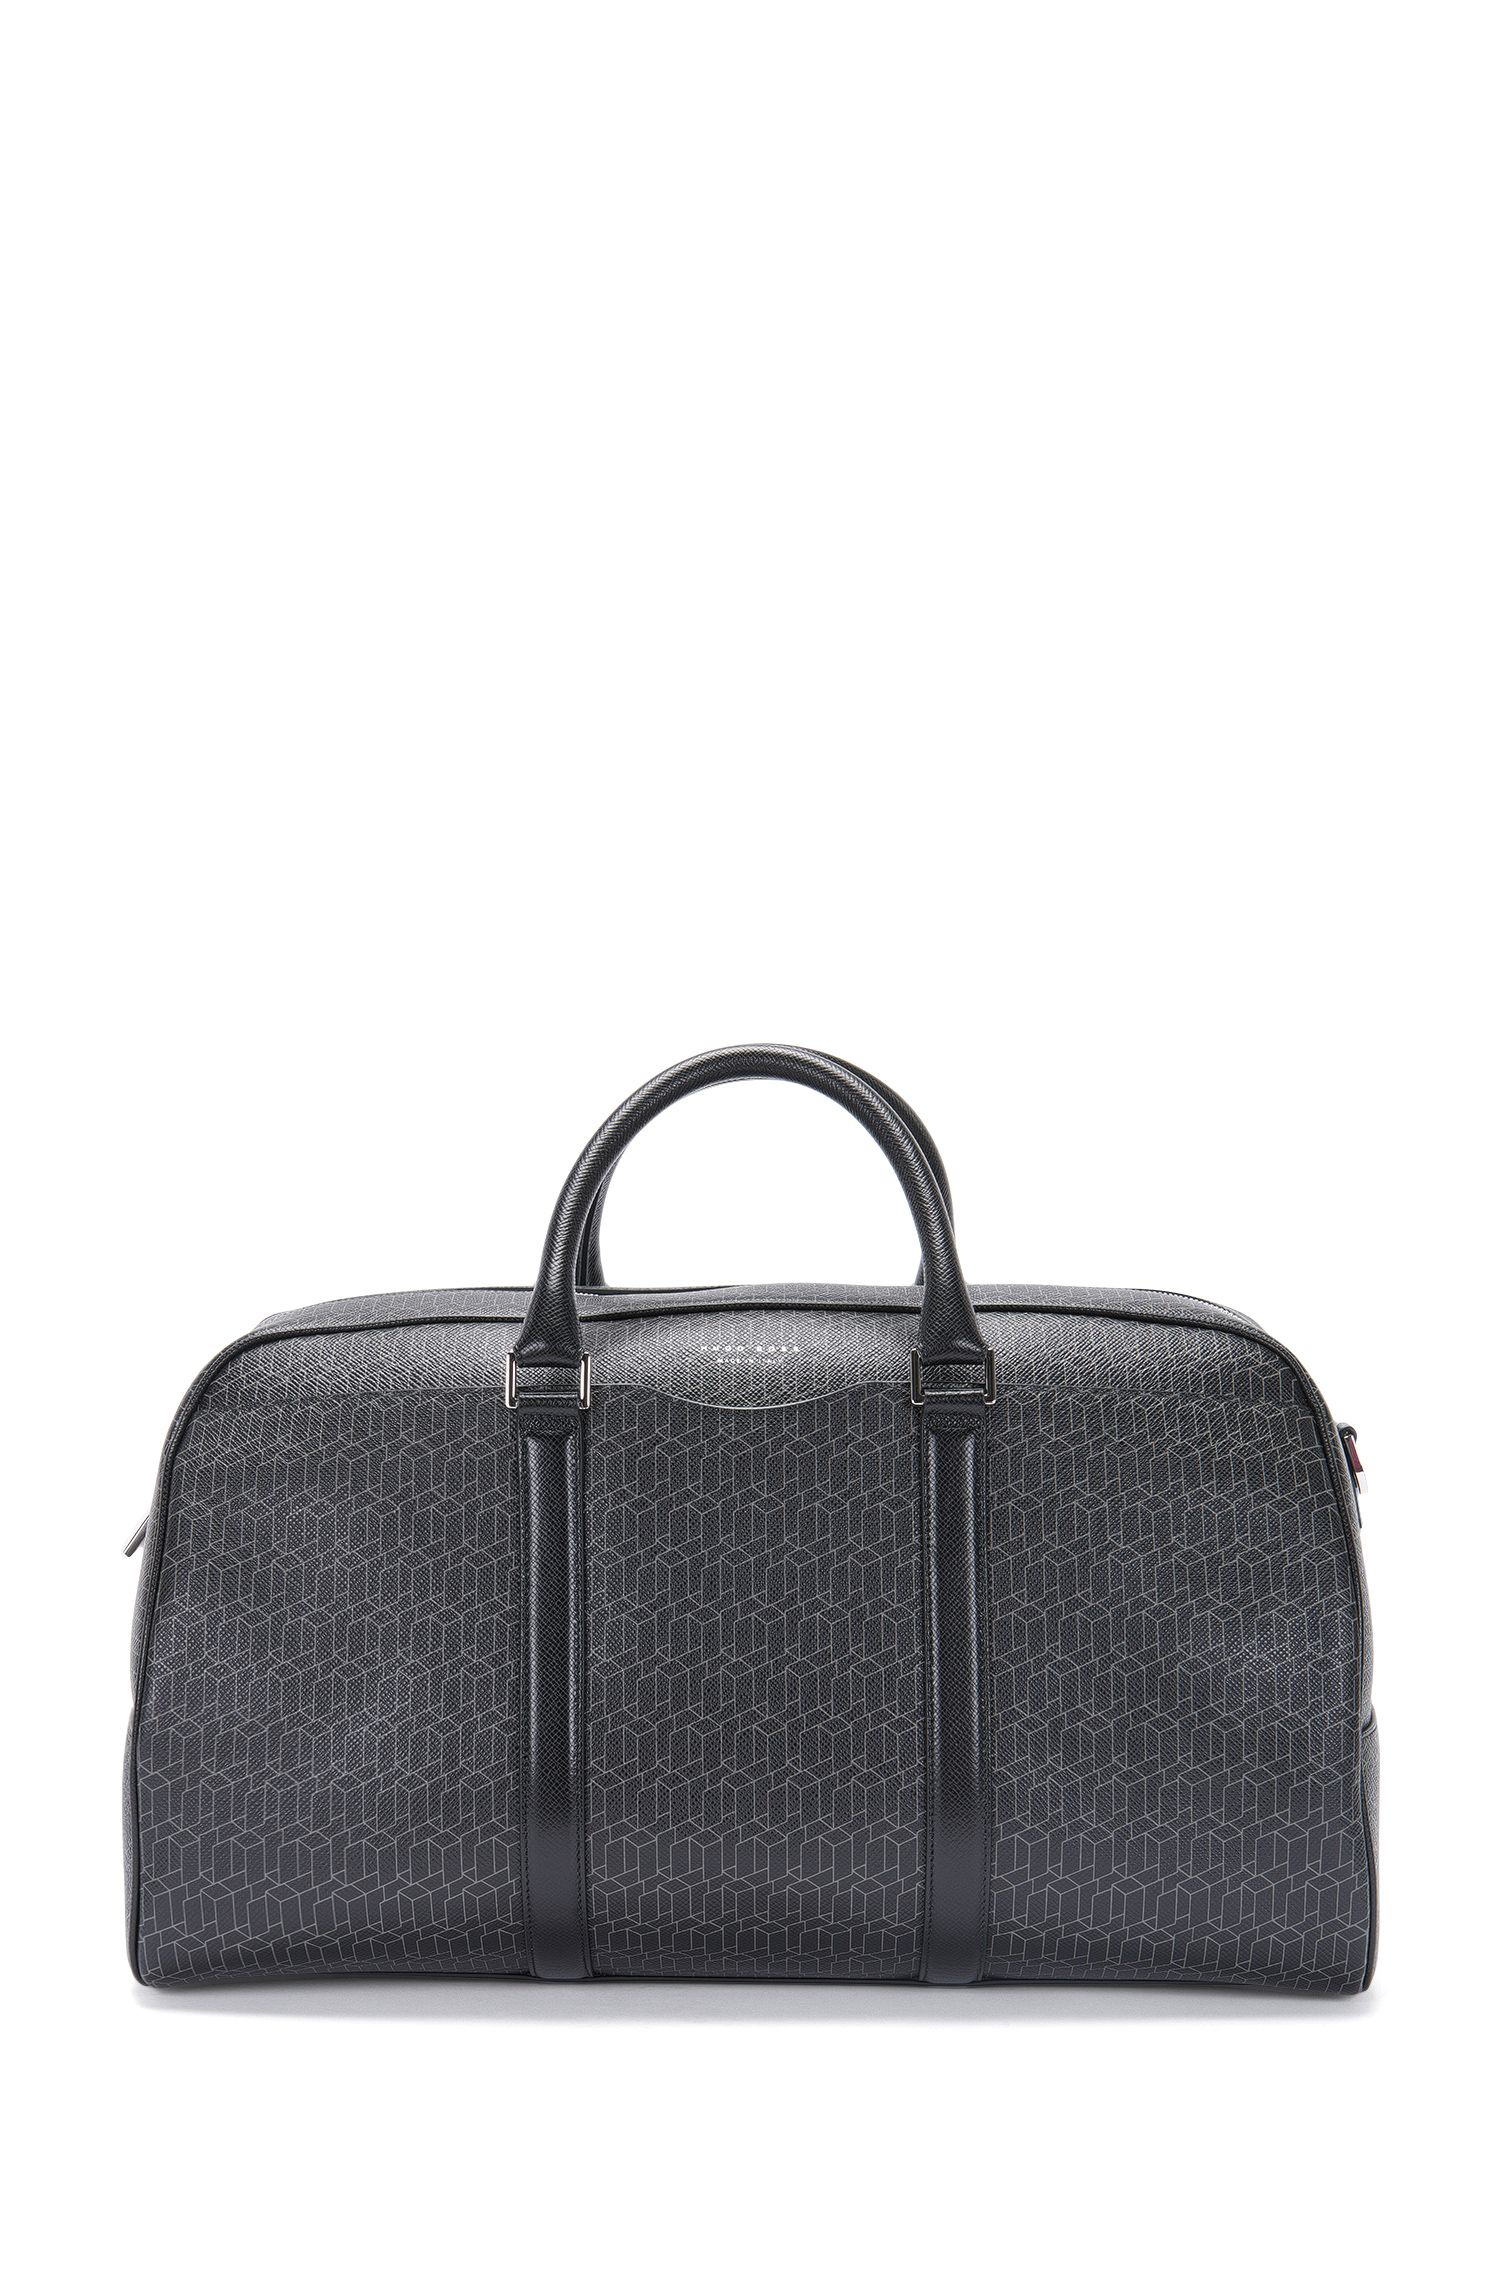 'Signature H Holdall' | Italian Calfskin Printed Embossed Weekender Bag, Detachable Shoulder Strap